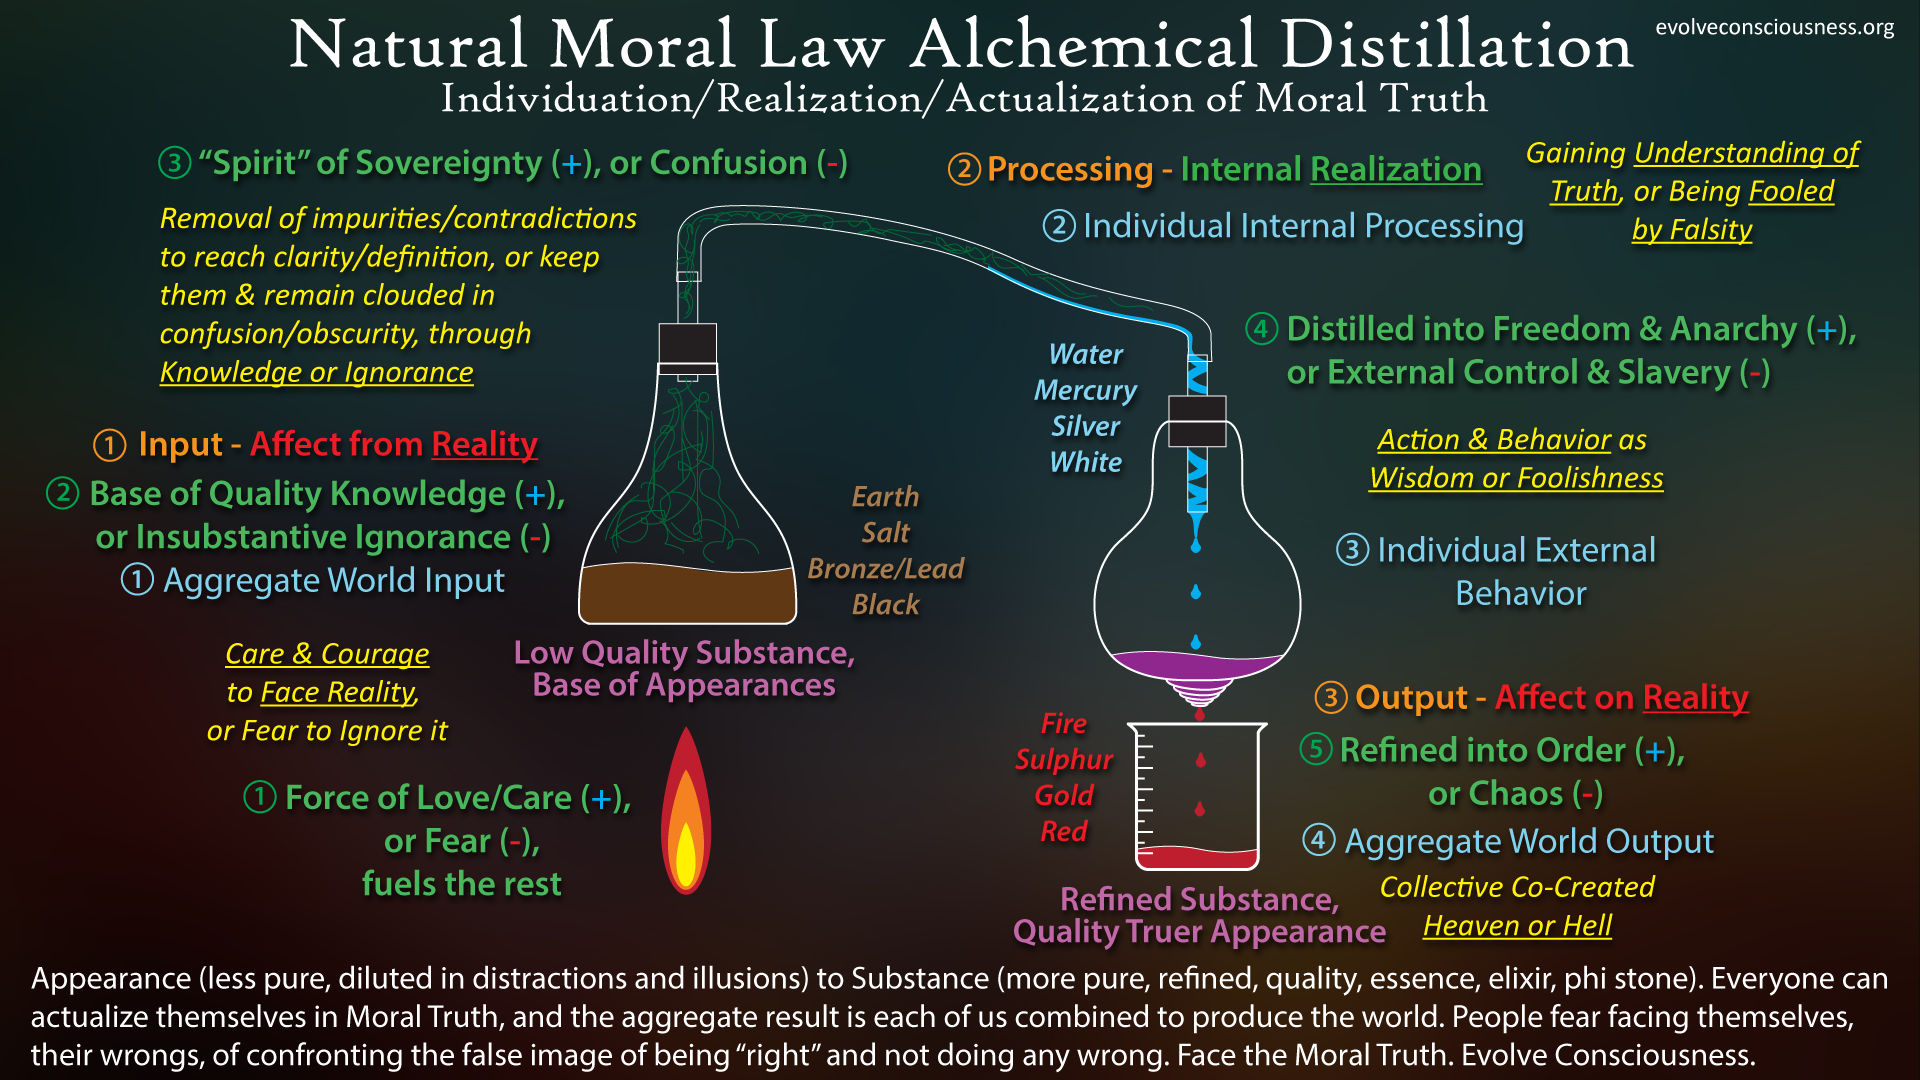 Natural-Moral-Law-Alchemical-Distillation